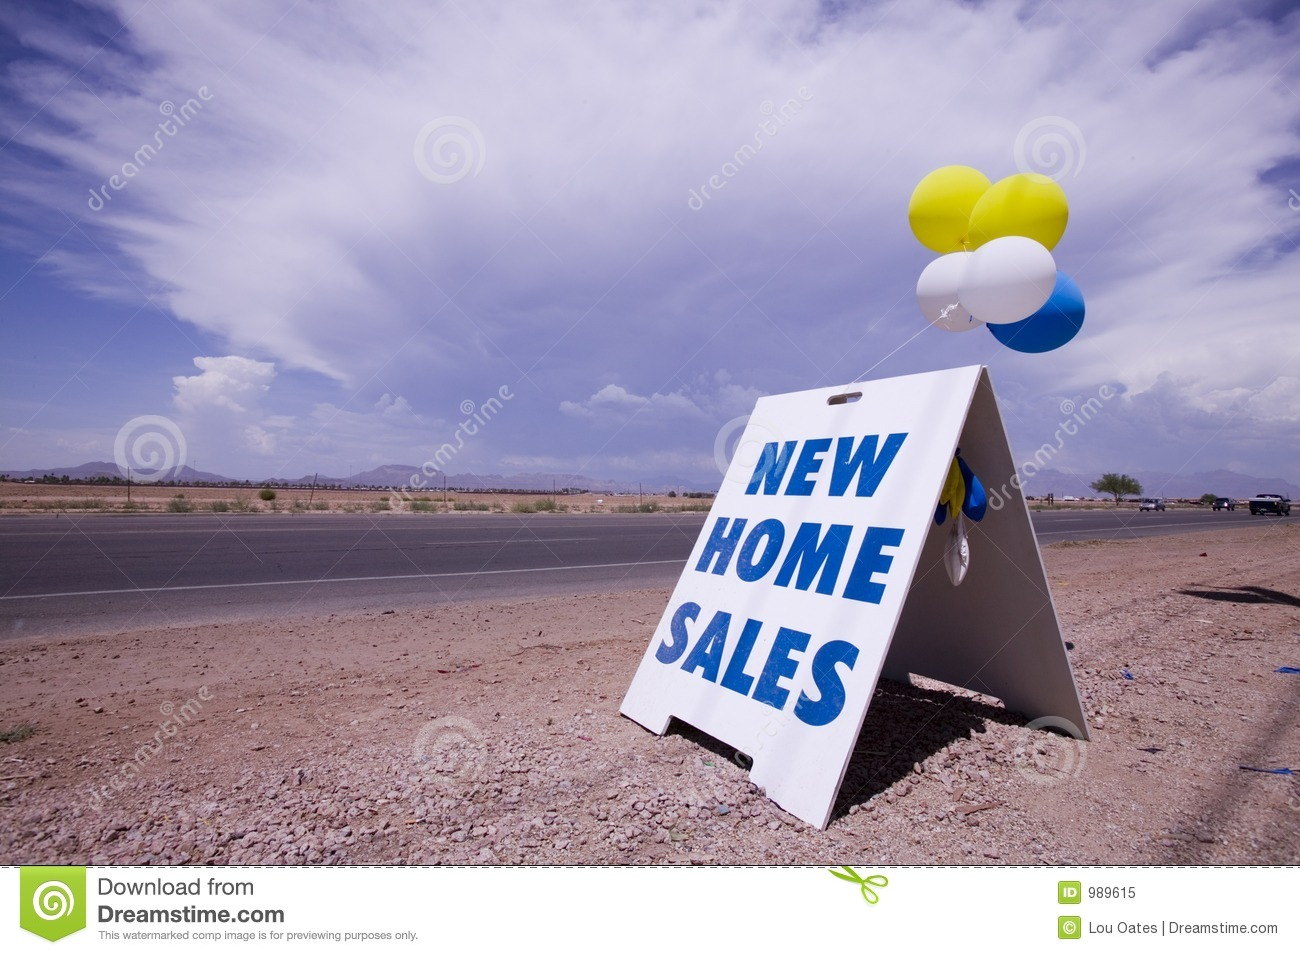 New Home Sales Royalty Free Stock Photo Image 989615